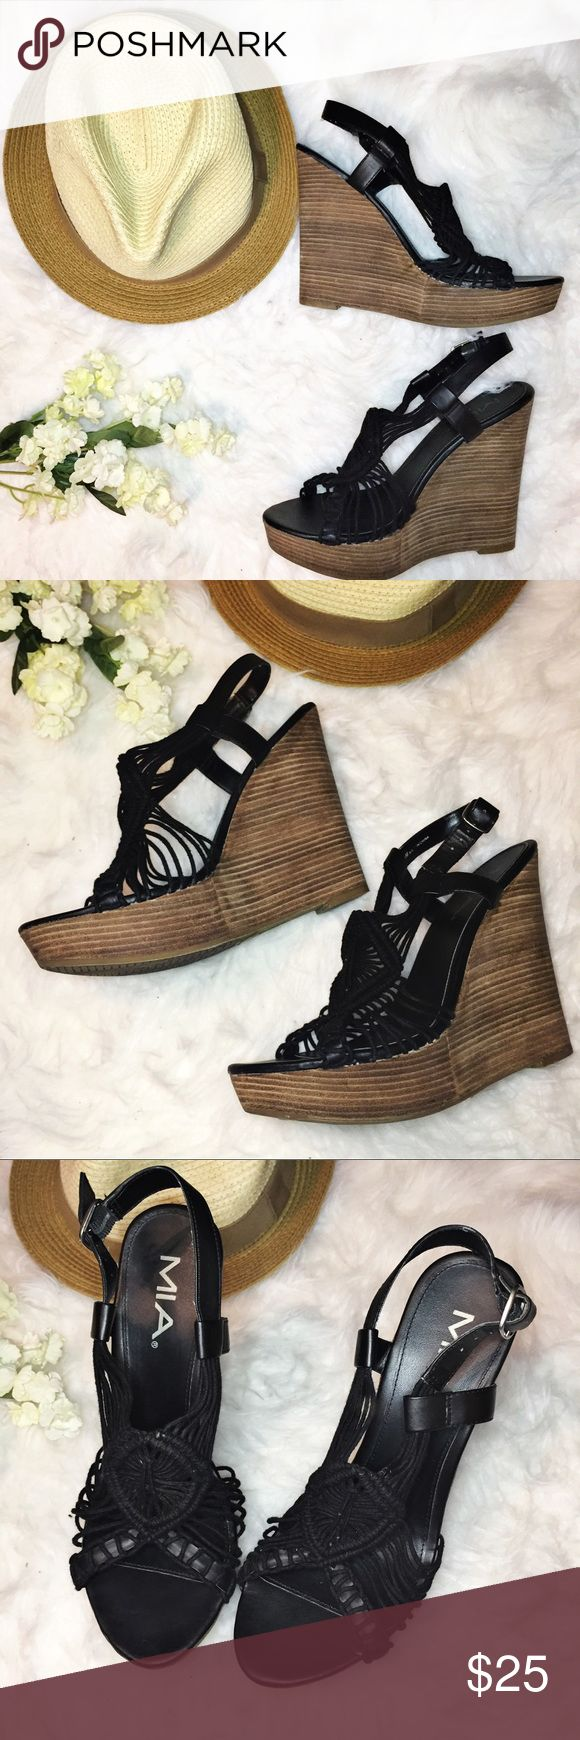 """MIA - black rope and wood grain wedges Pre-loved. Only worn a couple of times (see bottom of shoe). No chips, no tears; still in good condition. I find that they run big, I'd prefer a half-size down because you tend slide towards the toes. Wedges are 5"""" high. Does not have it's shoebox. MIA Shoes Wedges"""